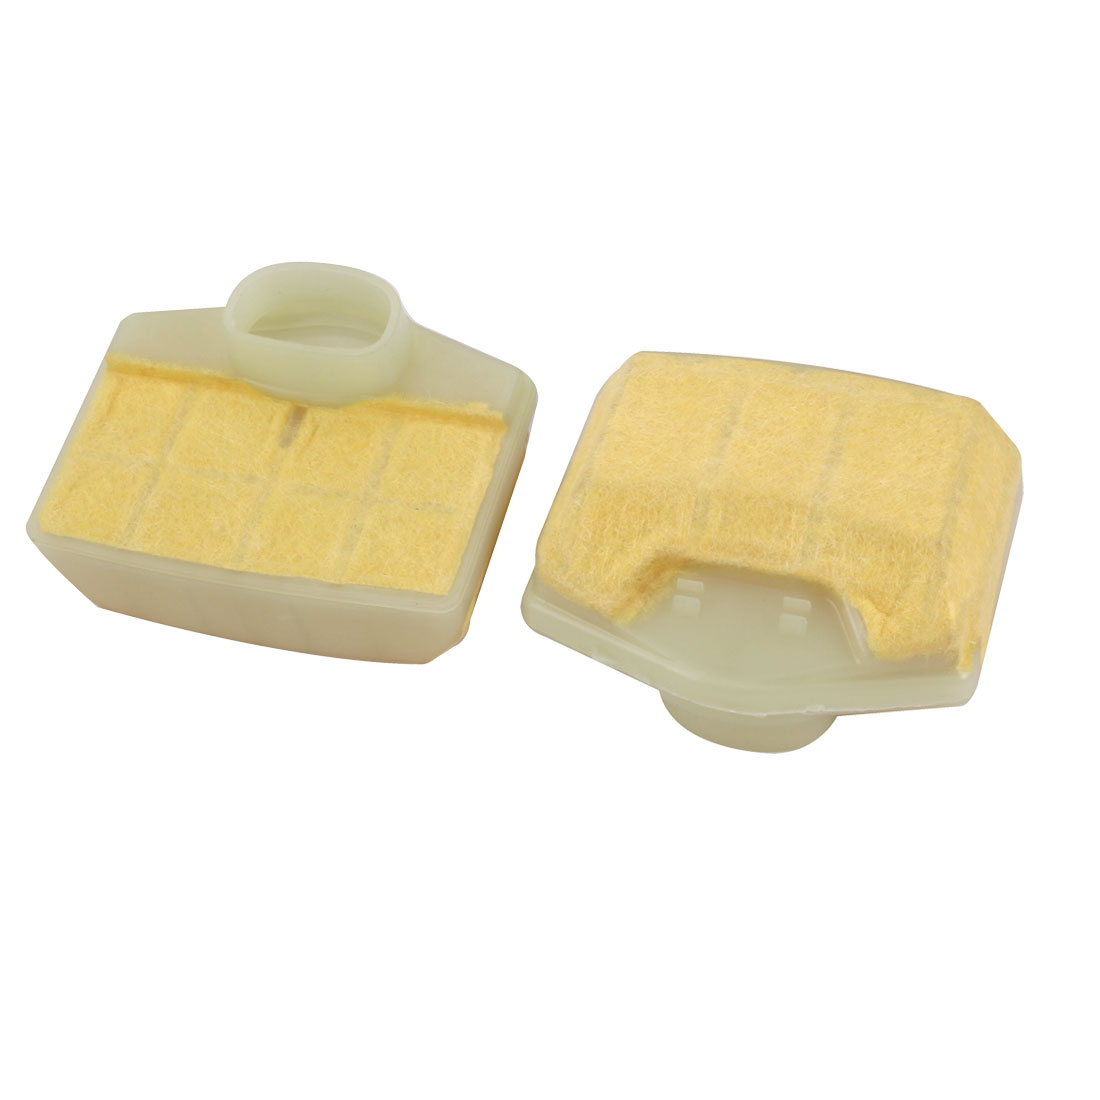 2pcs New Replacement Extra Guard Panel Engine 365A Air Filter Cleaner Accessory